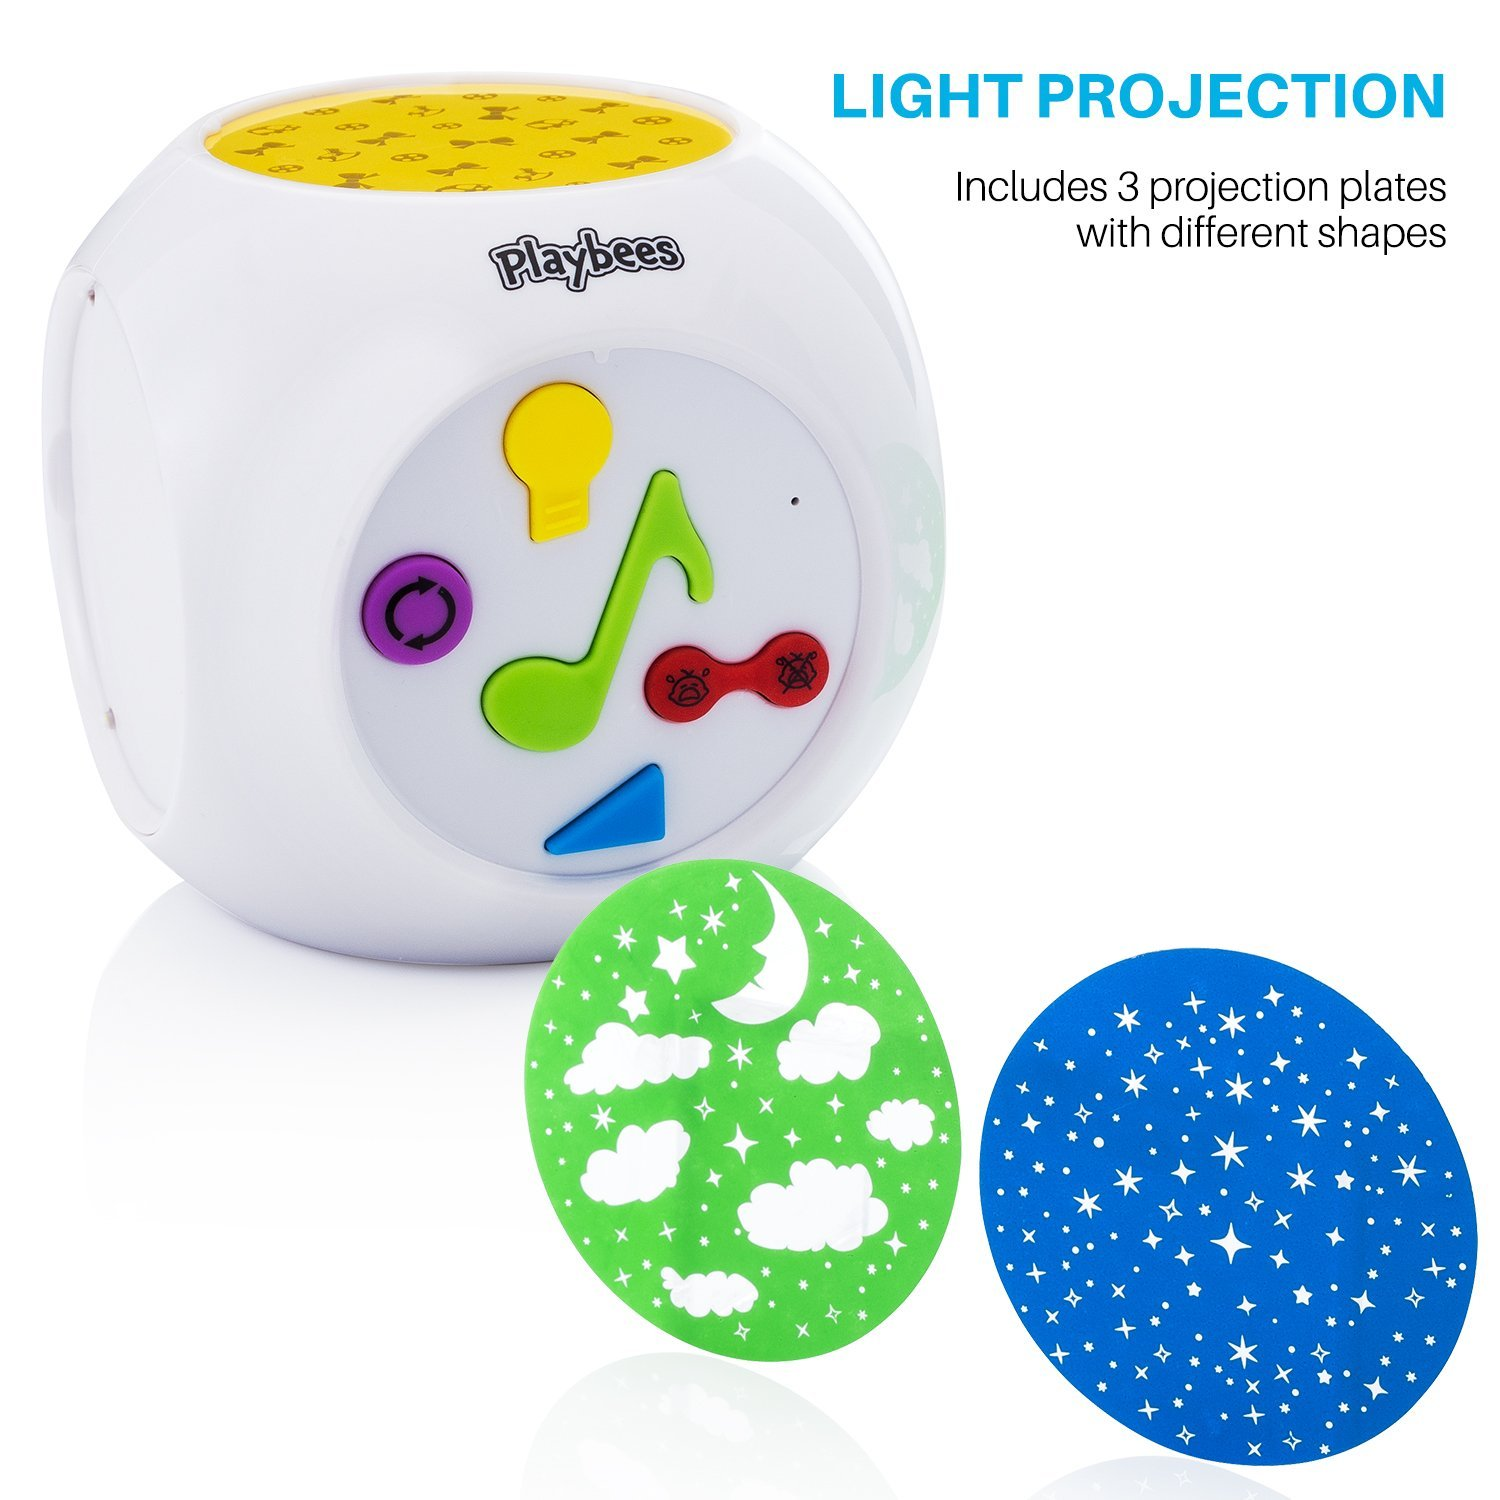 star projector Playbees